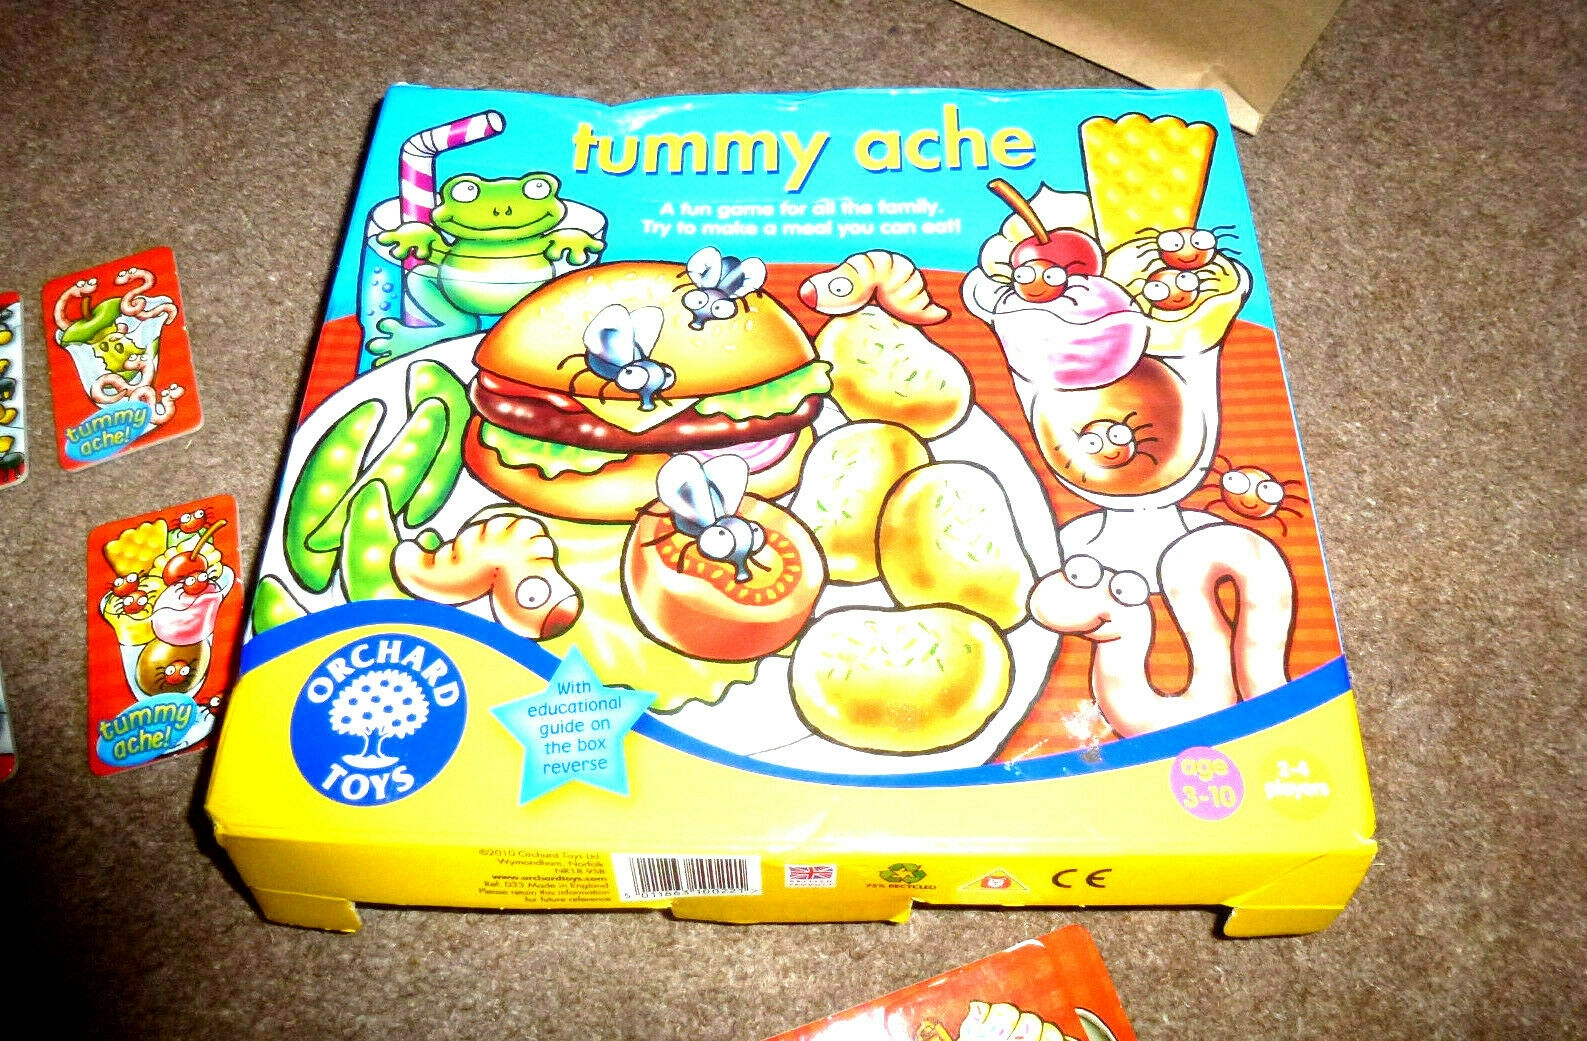 Tummy Ache Game - Age 3 - 10 Yrs From Orchard Toys